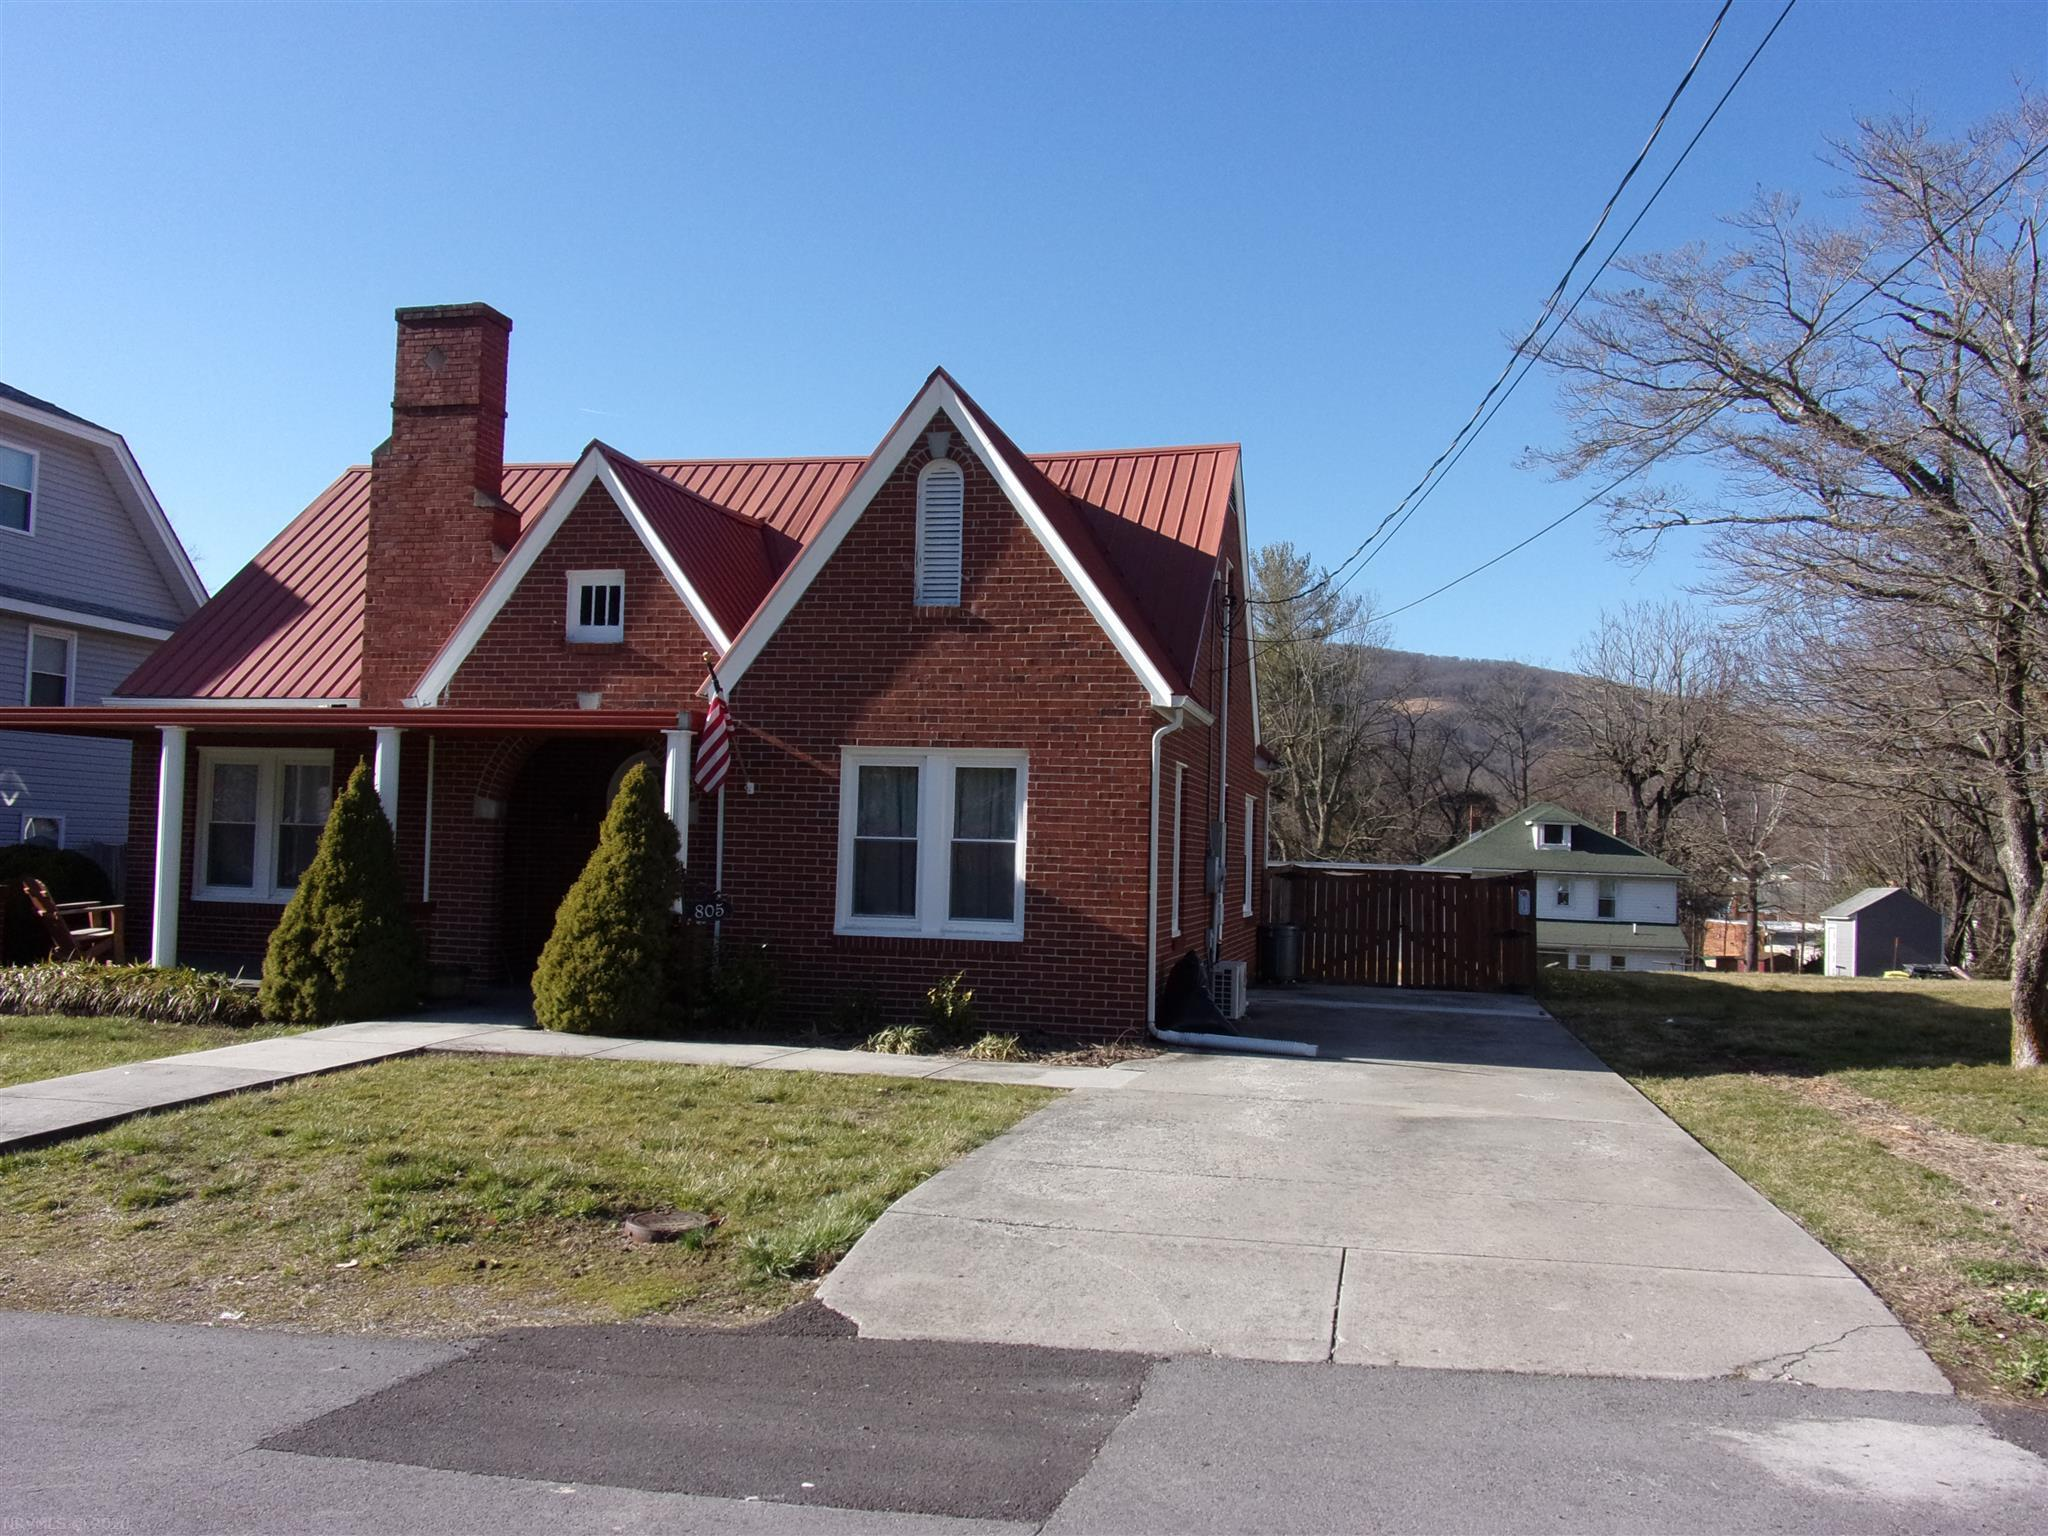 Lovely brick cape cod, 3br, 1 ba, New metal roof, new windows, front porch, back deck, fenced yard, Hot Tub, new windows, new carpet with Hardwood under, full basement,HP, gas logs, Cozy home at a great price.  A must See!